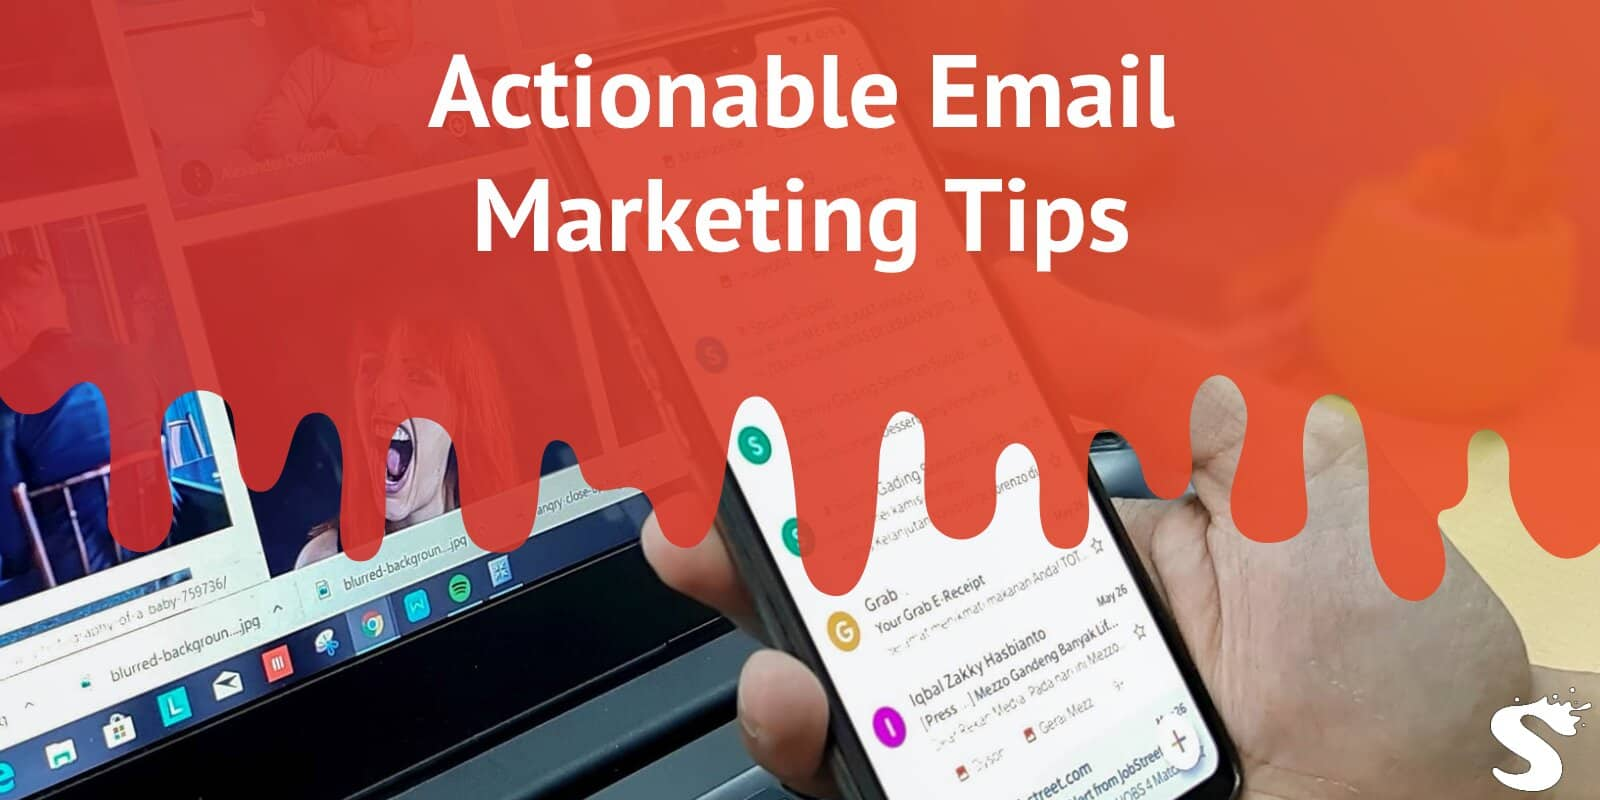 Actionable Email Marketing Tips